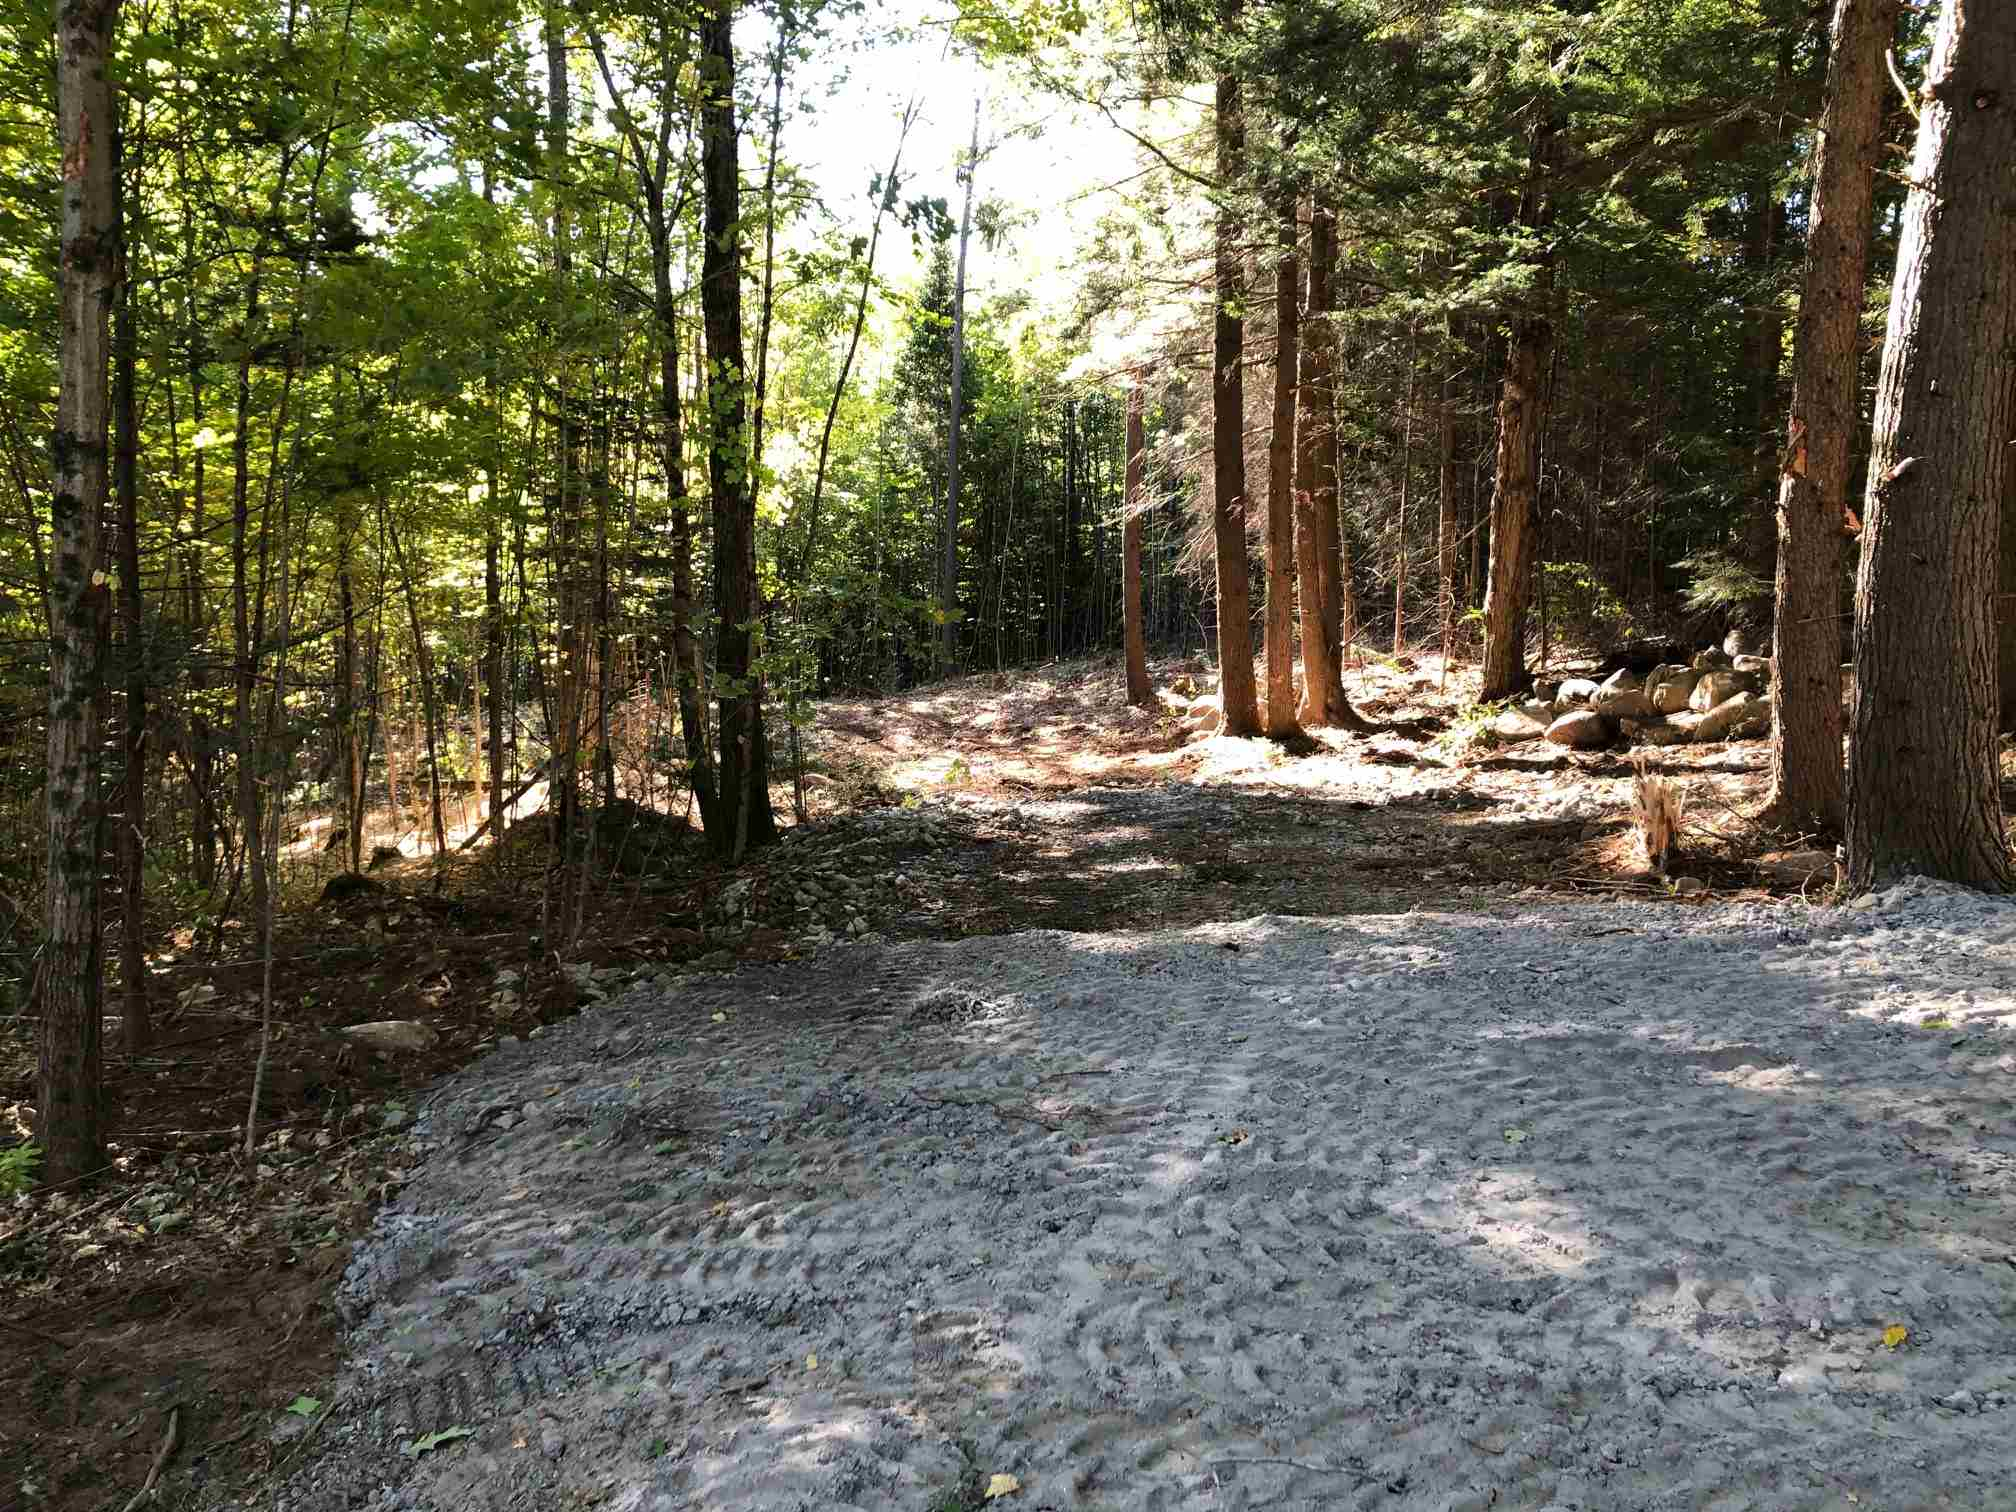 Croydon NH 03773 Land for sale $List Price is $40,000